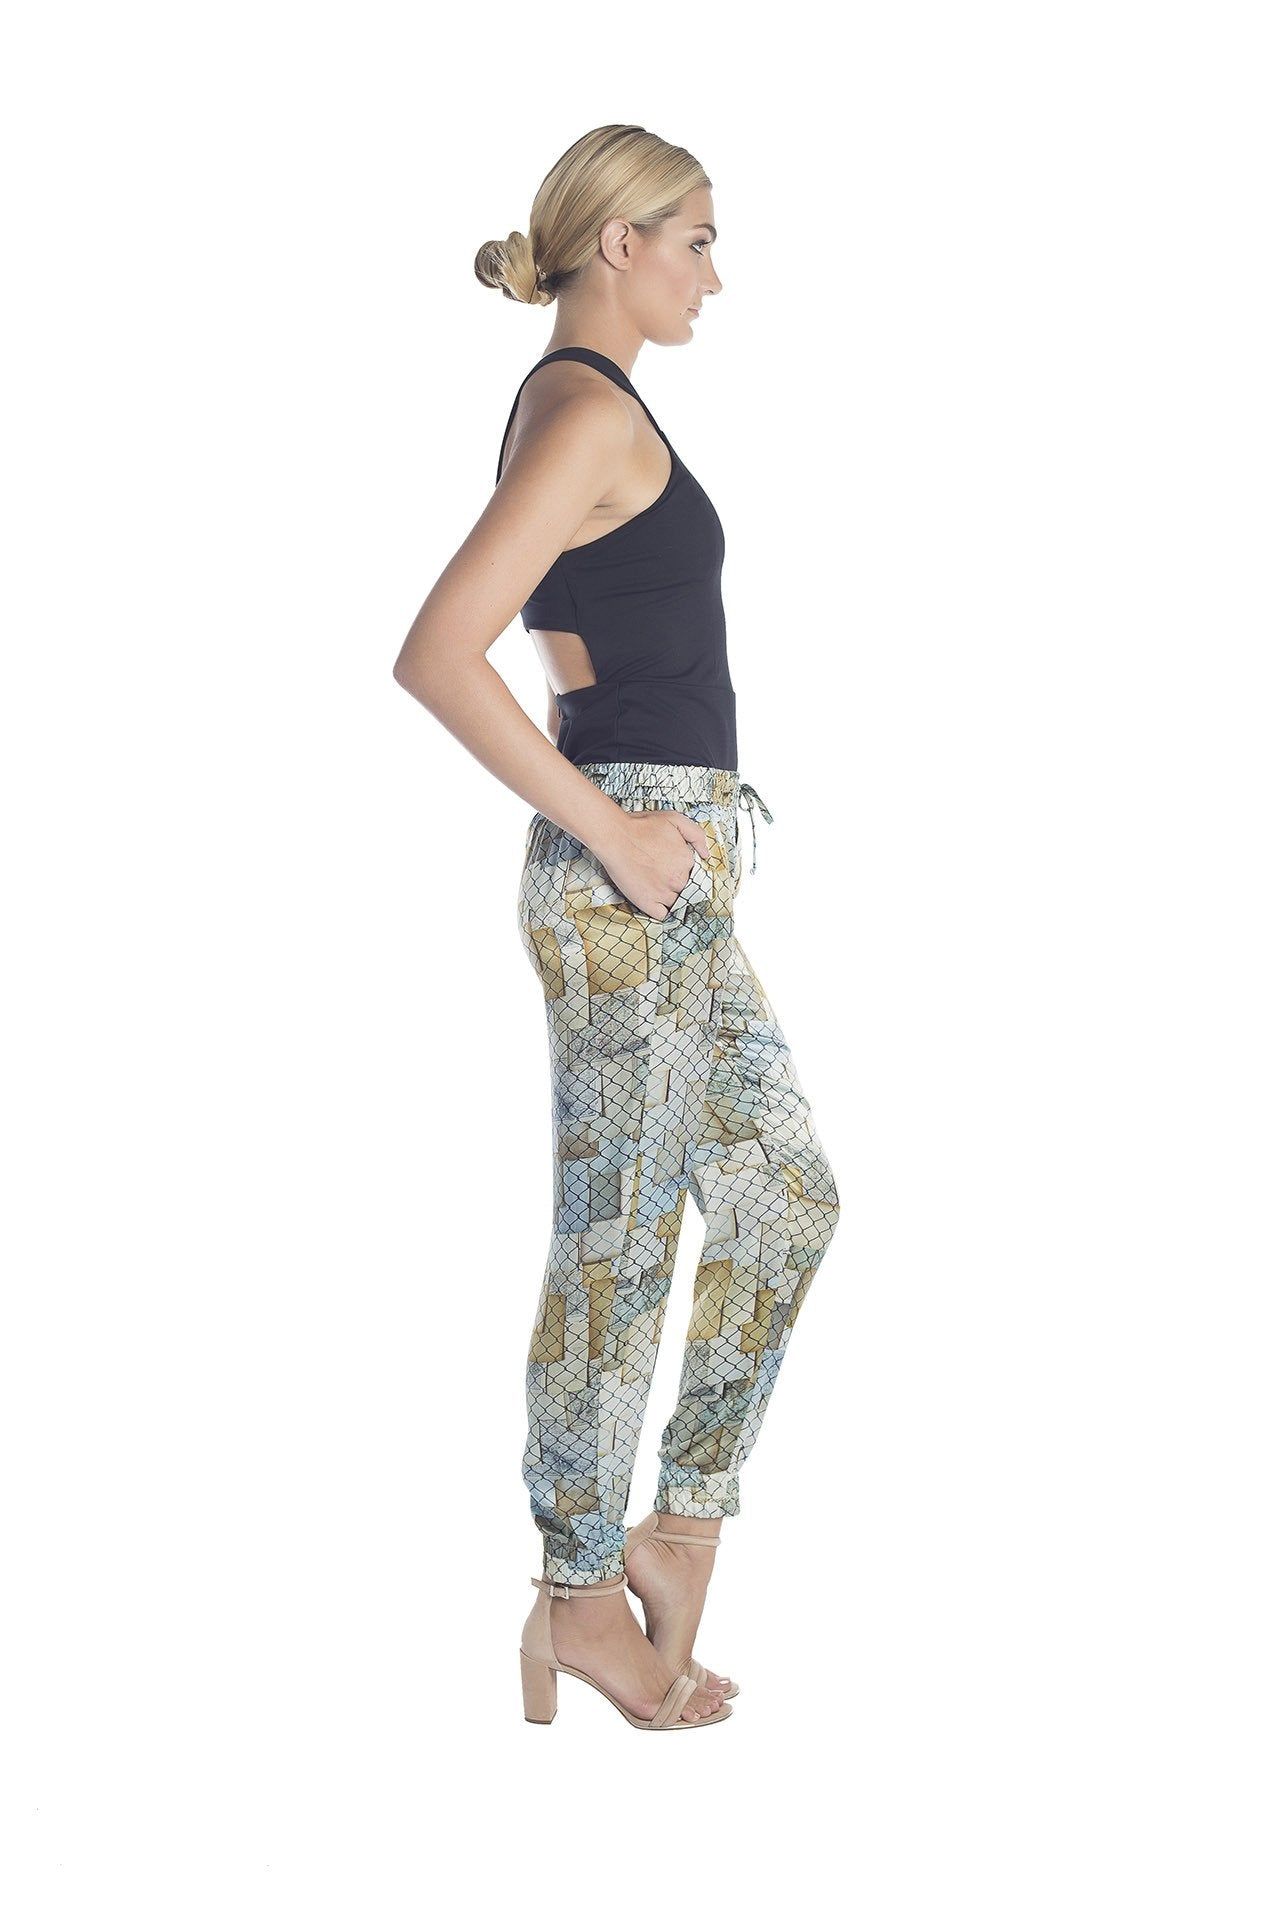 Side view of silk jogger pants with golden and silver hues designed by artist Mauro Giaconi